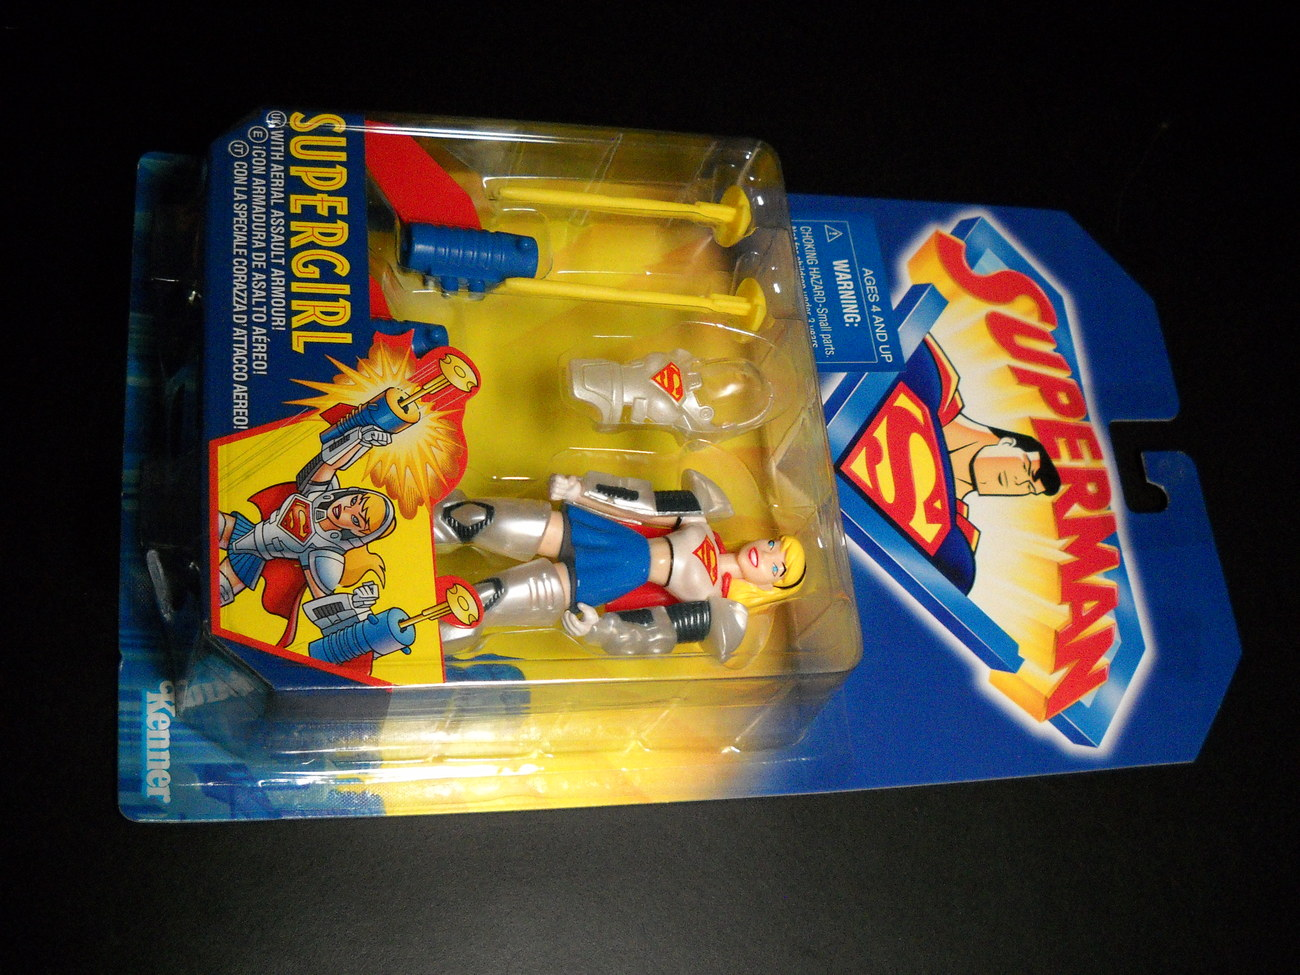 Toy superman kenner 1996 animated series supergirl moc 02